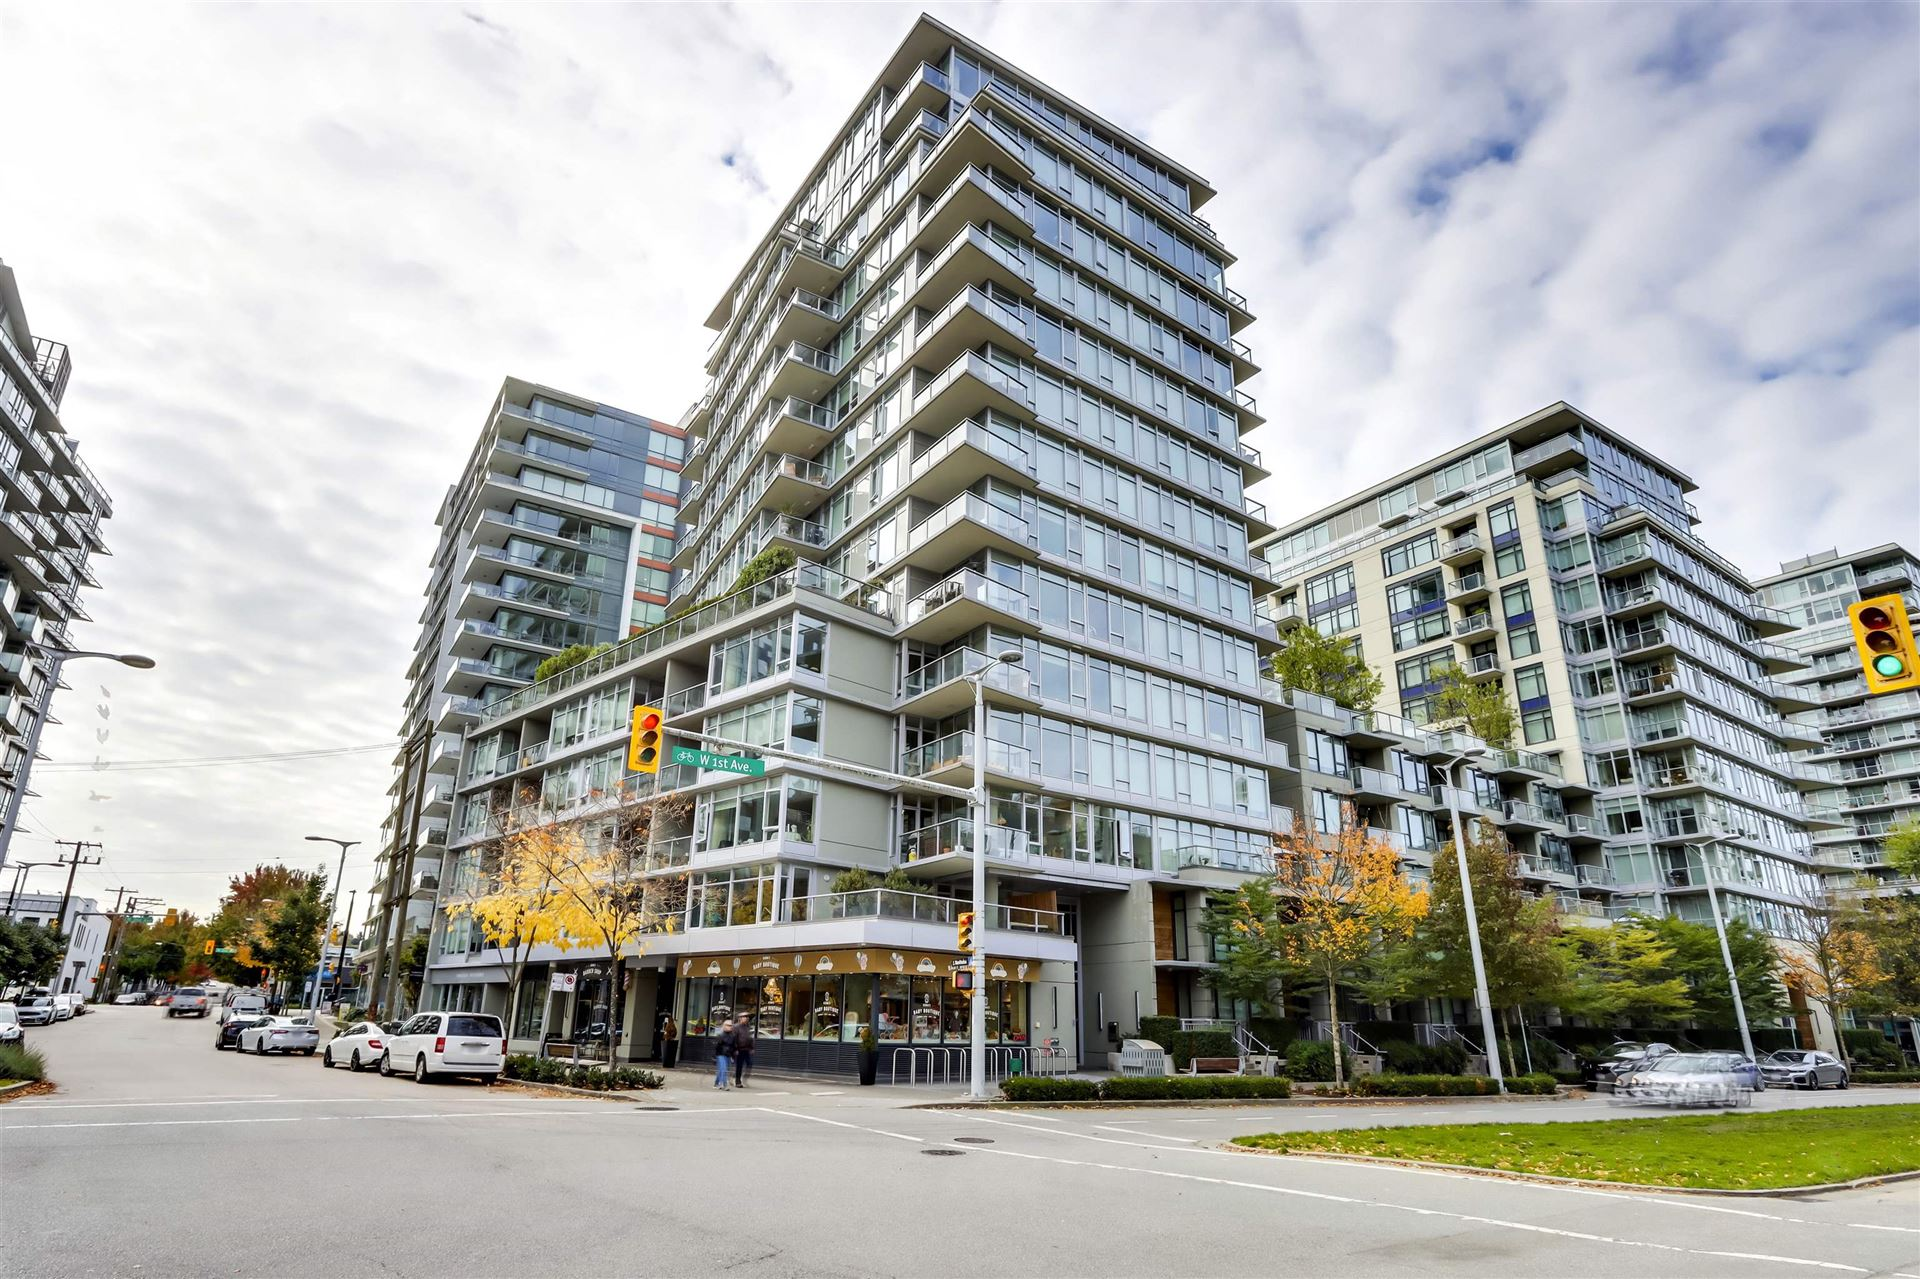 Photo for 806 108 W 1ST AVENUE, Vancouver, BC V5Y 0H4 (MLS # R2625628)